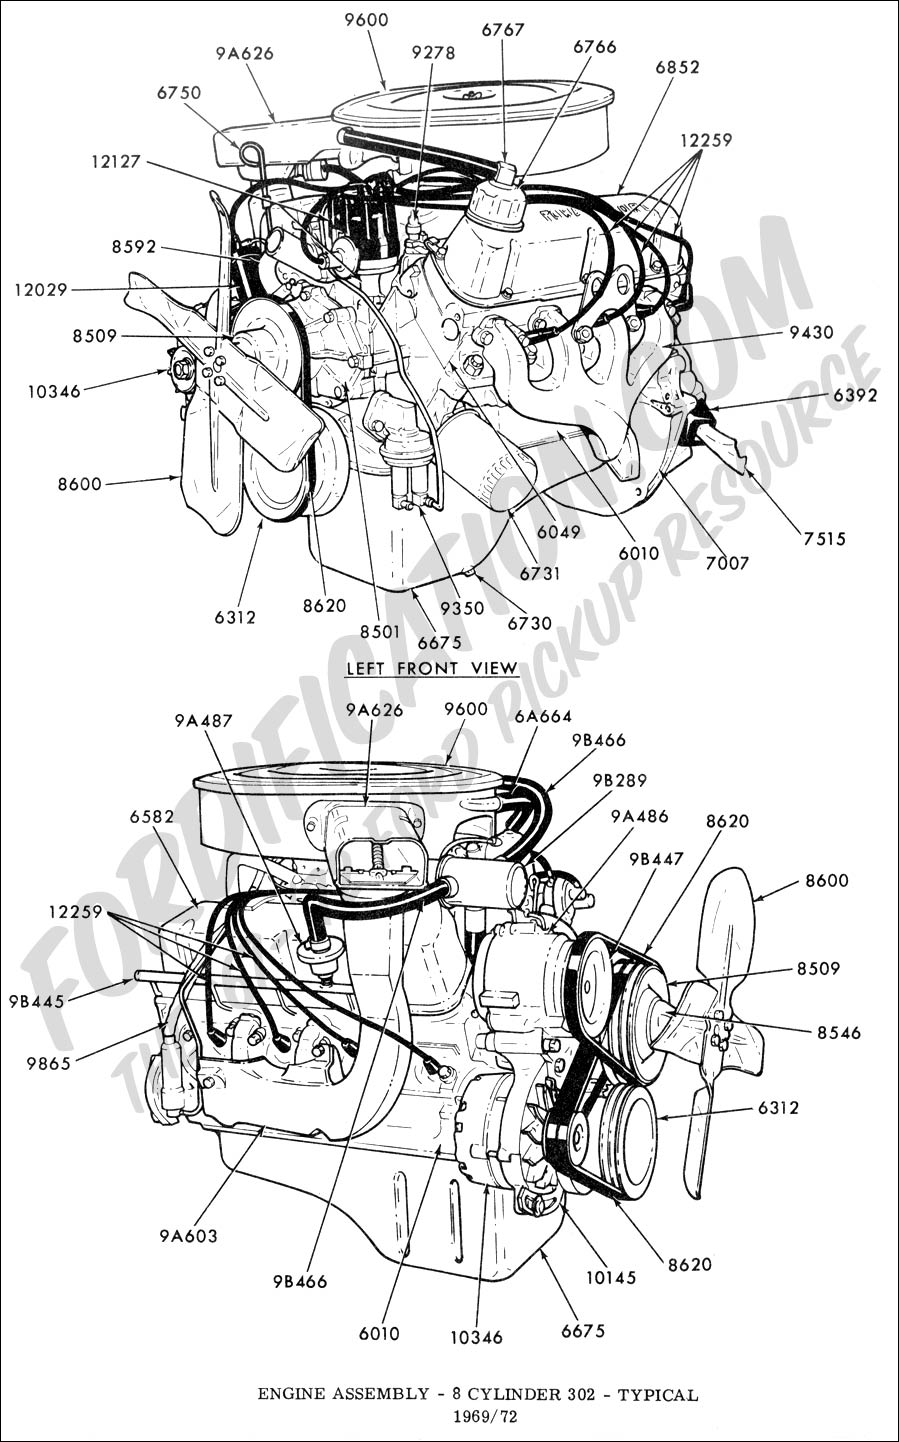 Ford Truck Technical Drawings and Schematics - Section E - Engine and